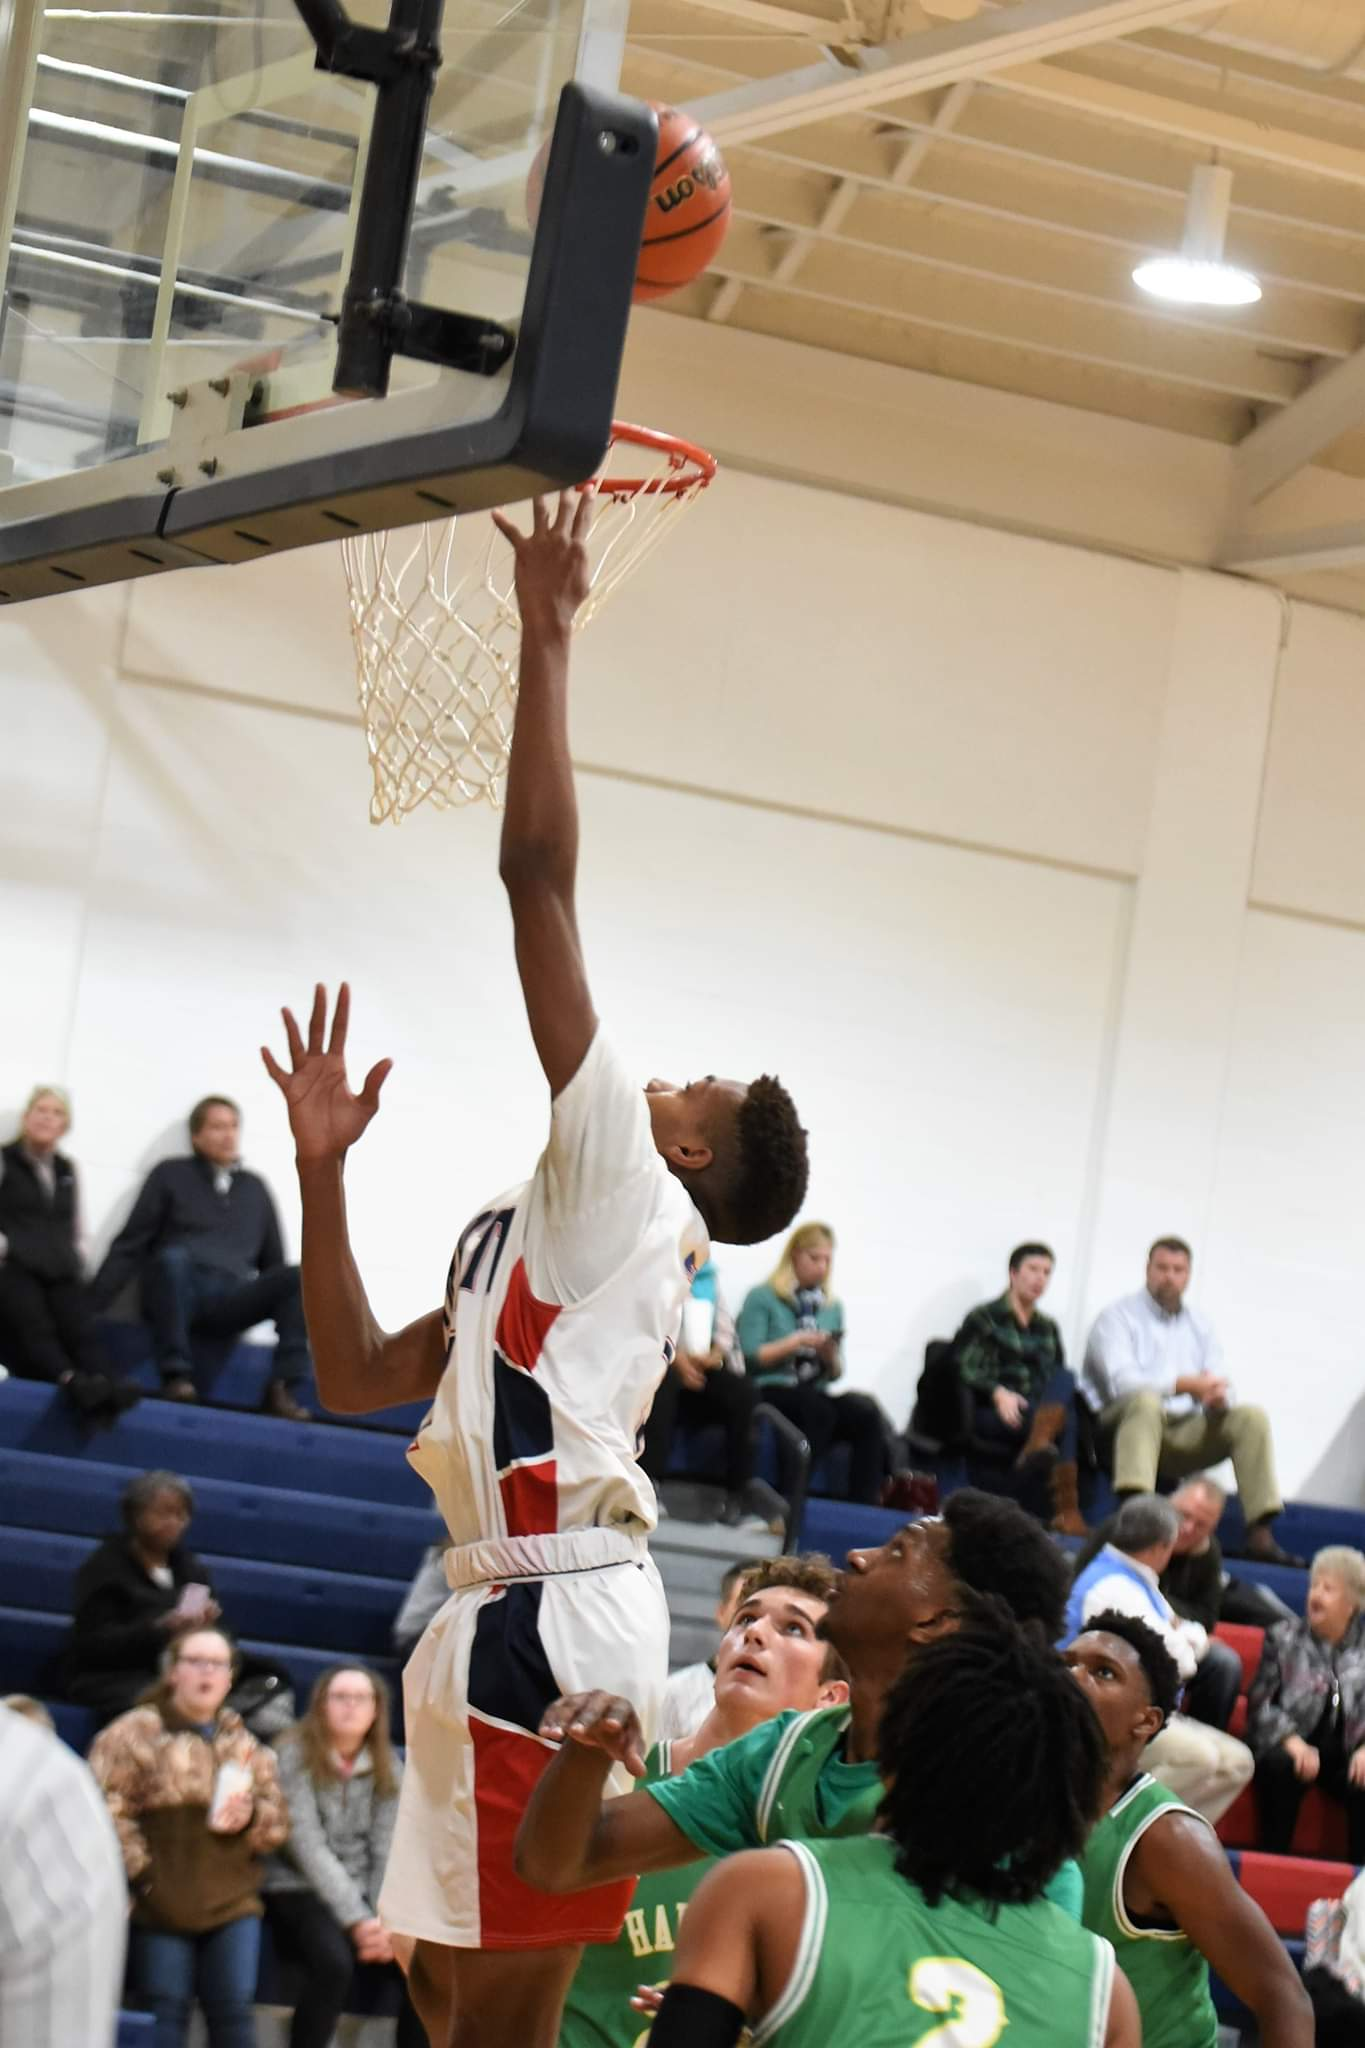 """Arendell Parrott's Jaquan Mosley had a monster game with 18 points, 21 rebounds and three blocks Thursday. Photo by William """"Bud"""" Hardy / Neuse News"""